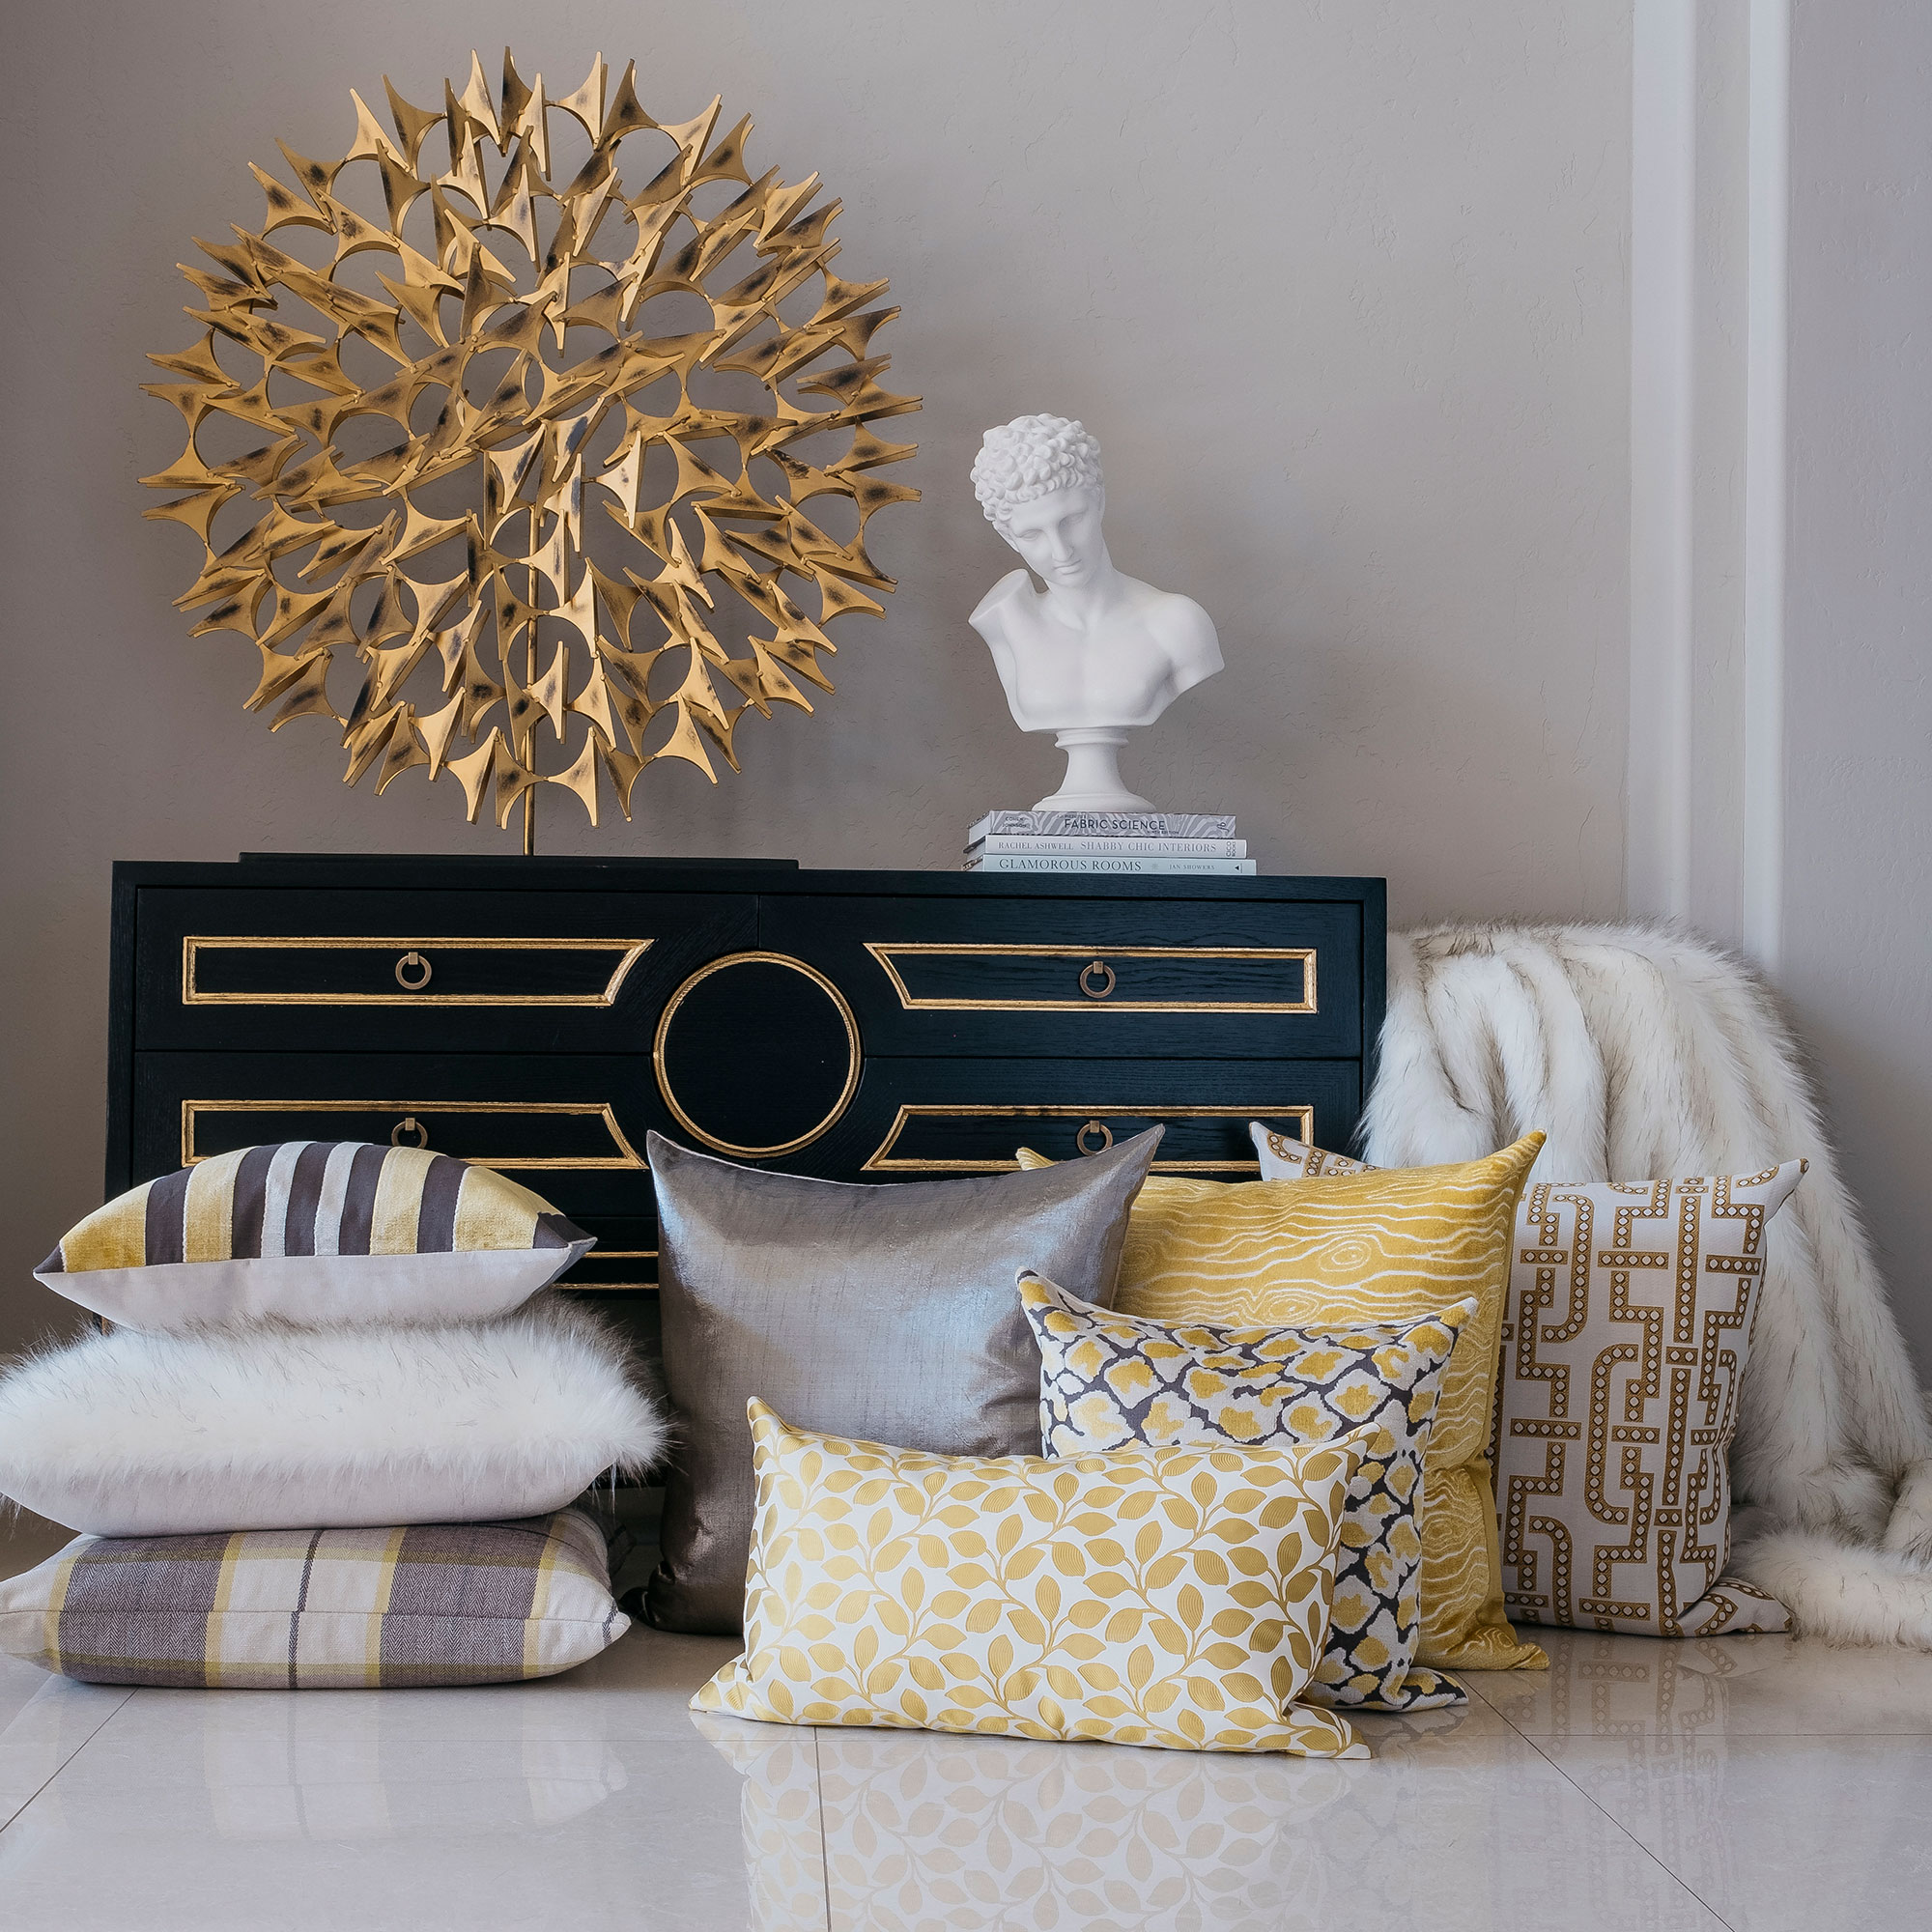 D.V. Kap Home: Luxury Throws & Accent Pillows